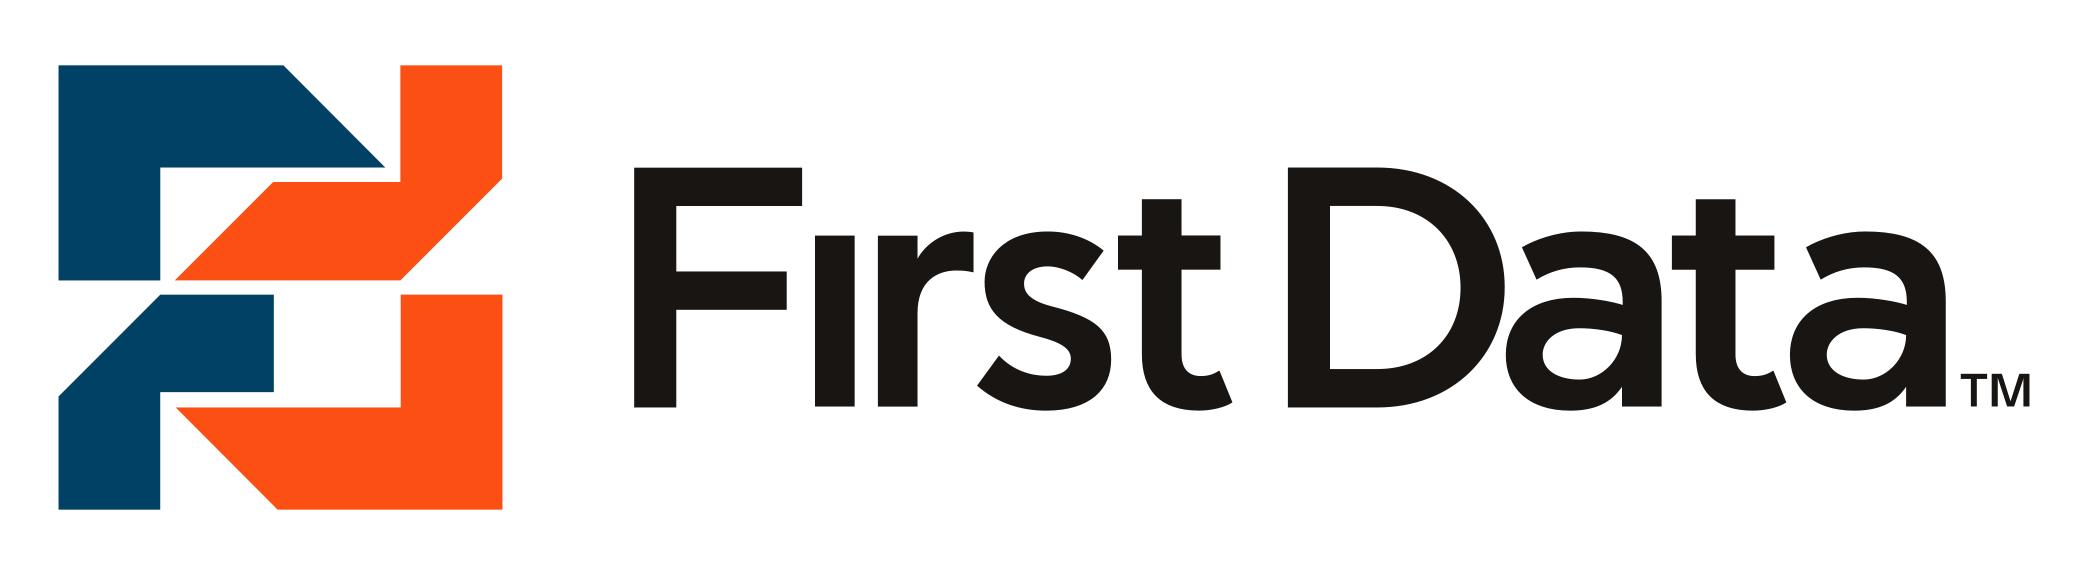 First Data Logo PNG Image.